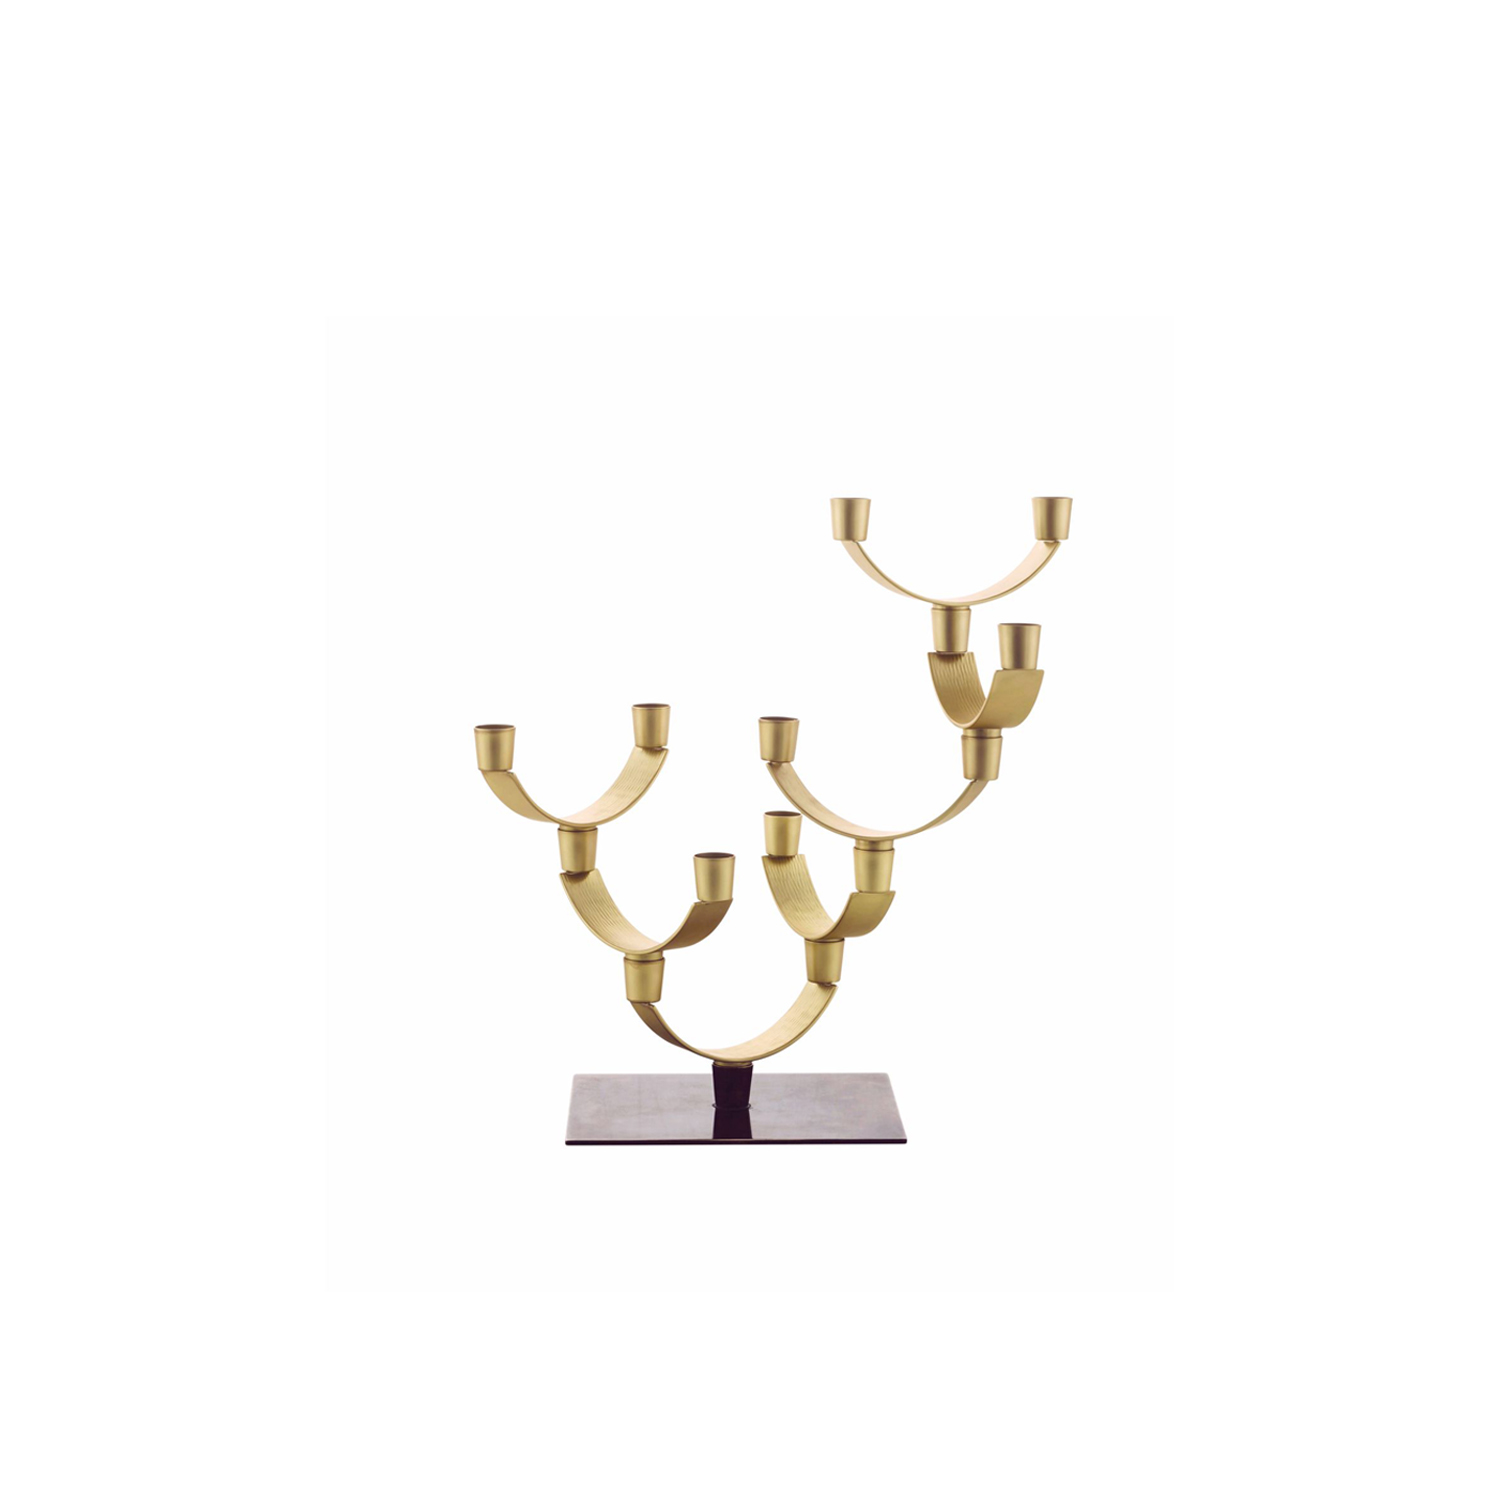 Corallo Piccolo Candleholders - Candelabra composed of 7 elements in satin brass on a base in smooth and burnished brass. | Matter of Stuff